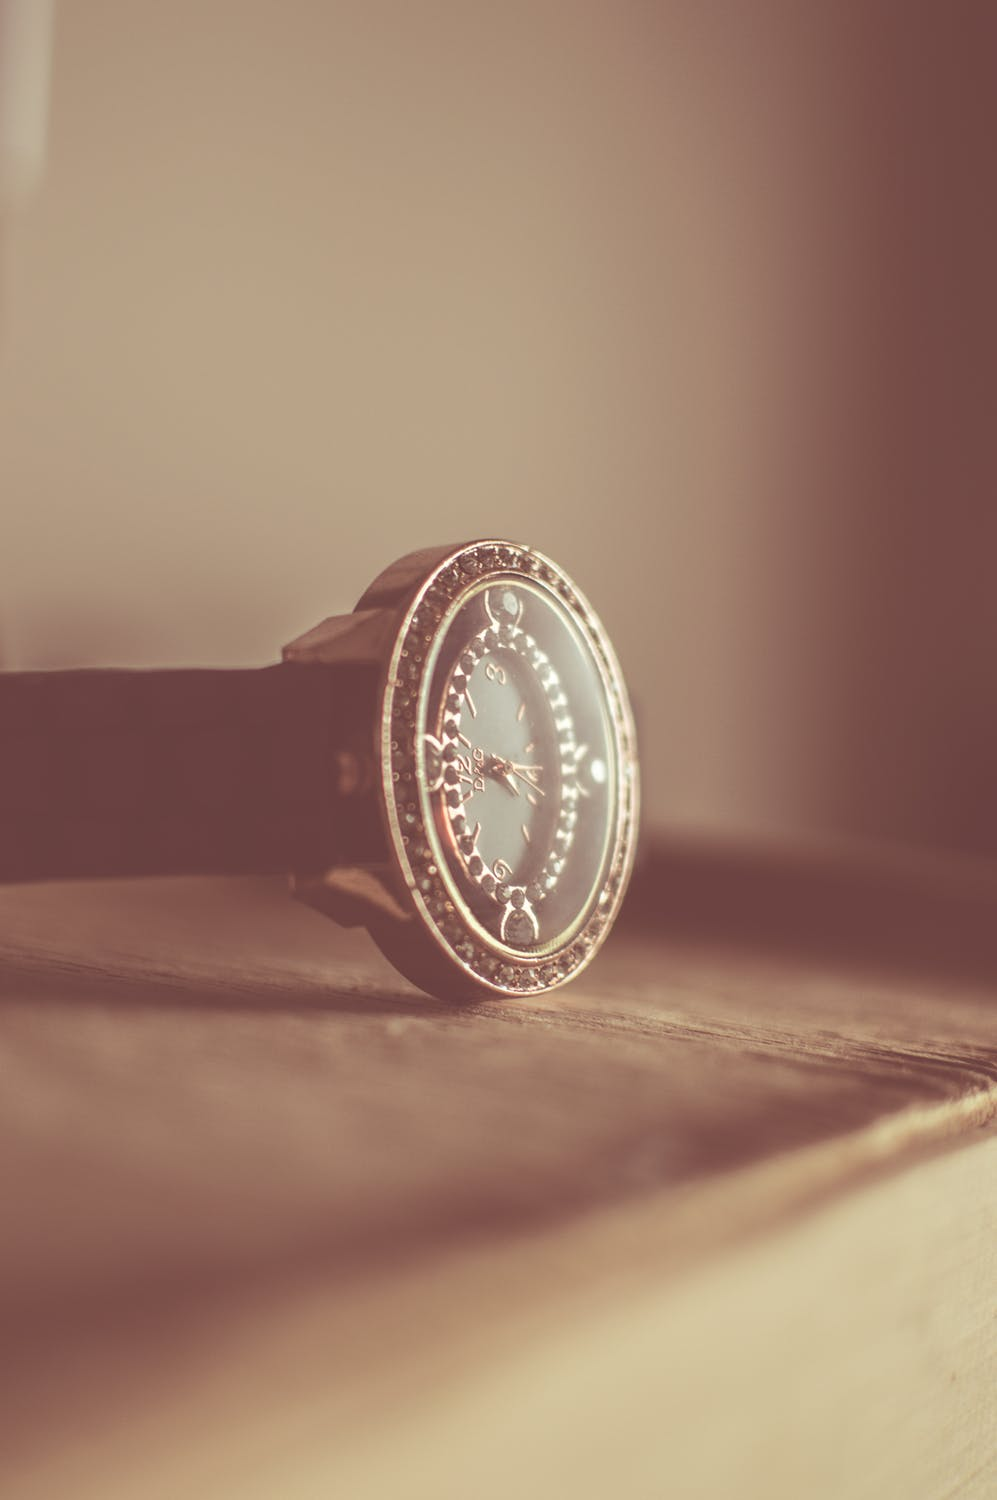 vintage watches, vintage, jewelry